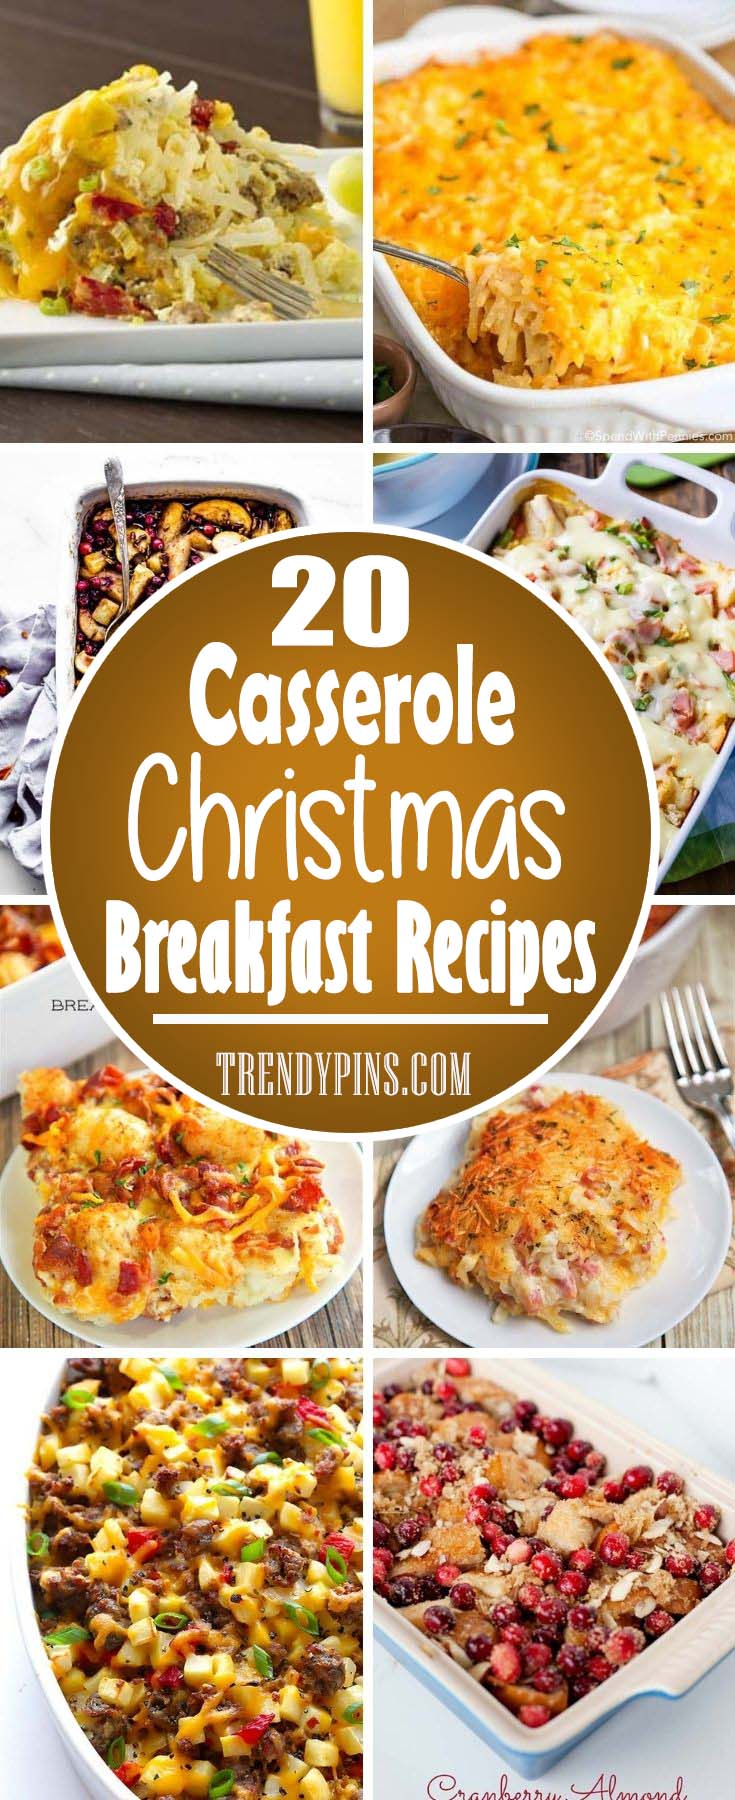 20 Casserole Christmas Breakfast Recipes #Christmas #breakfast #casserole #trendypins